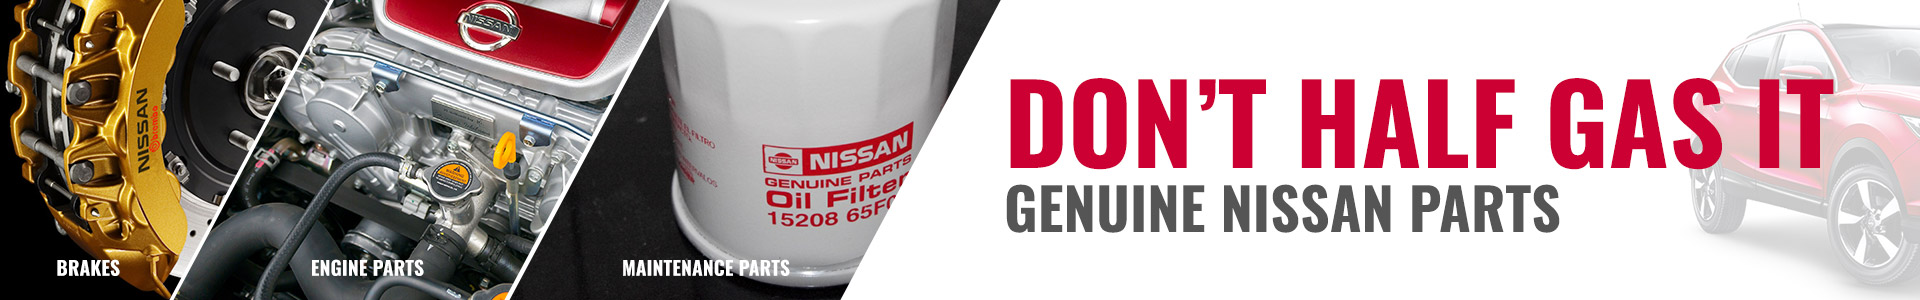 Genuine Nissan maintenance parts